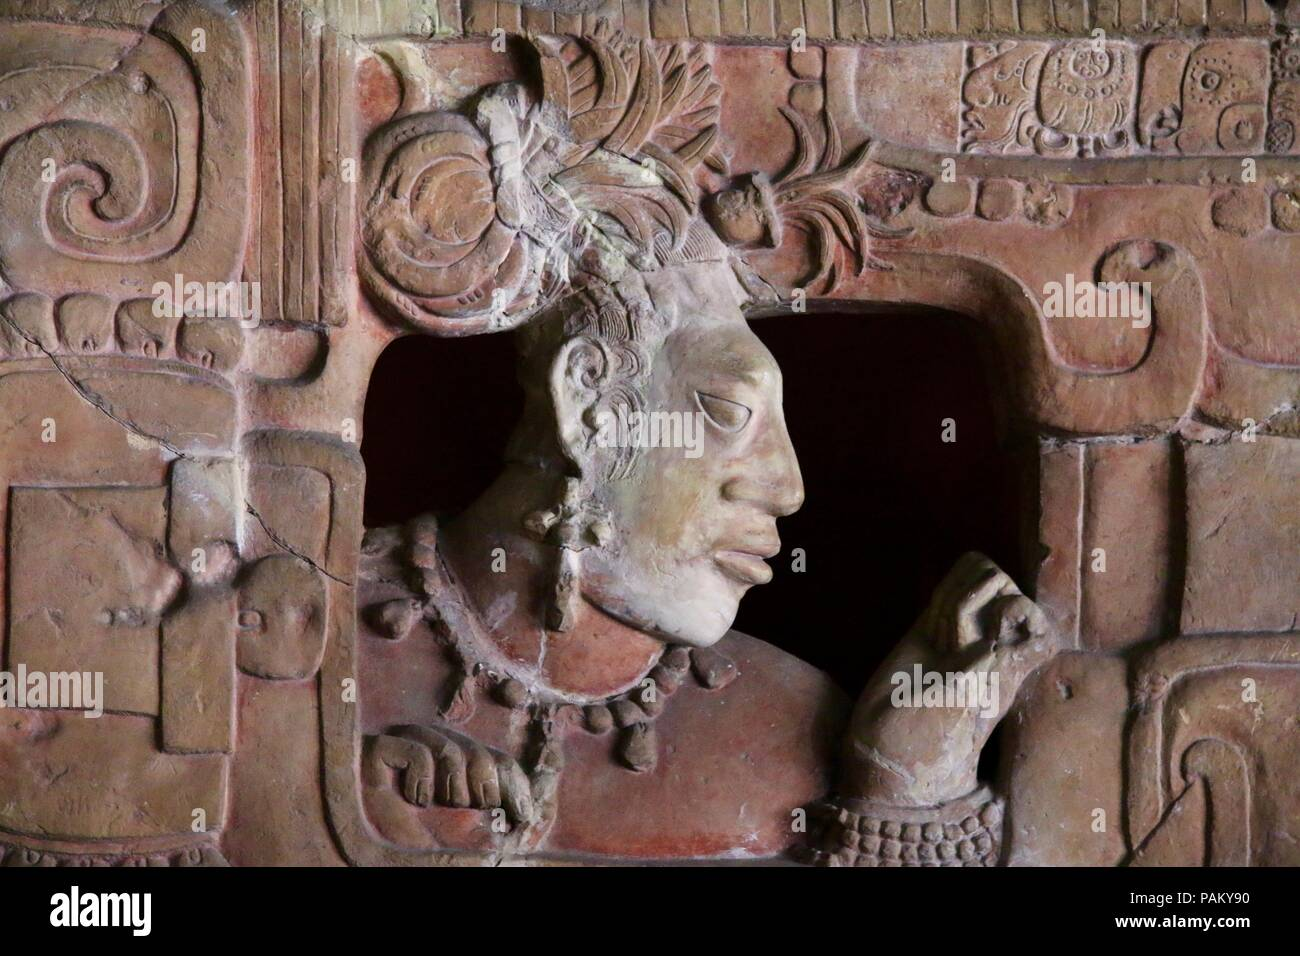 Mayan Emperor carved in pink stone in Guatemala - Stock Image